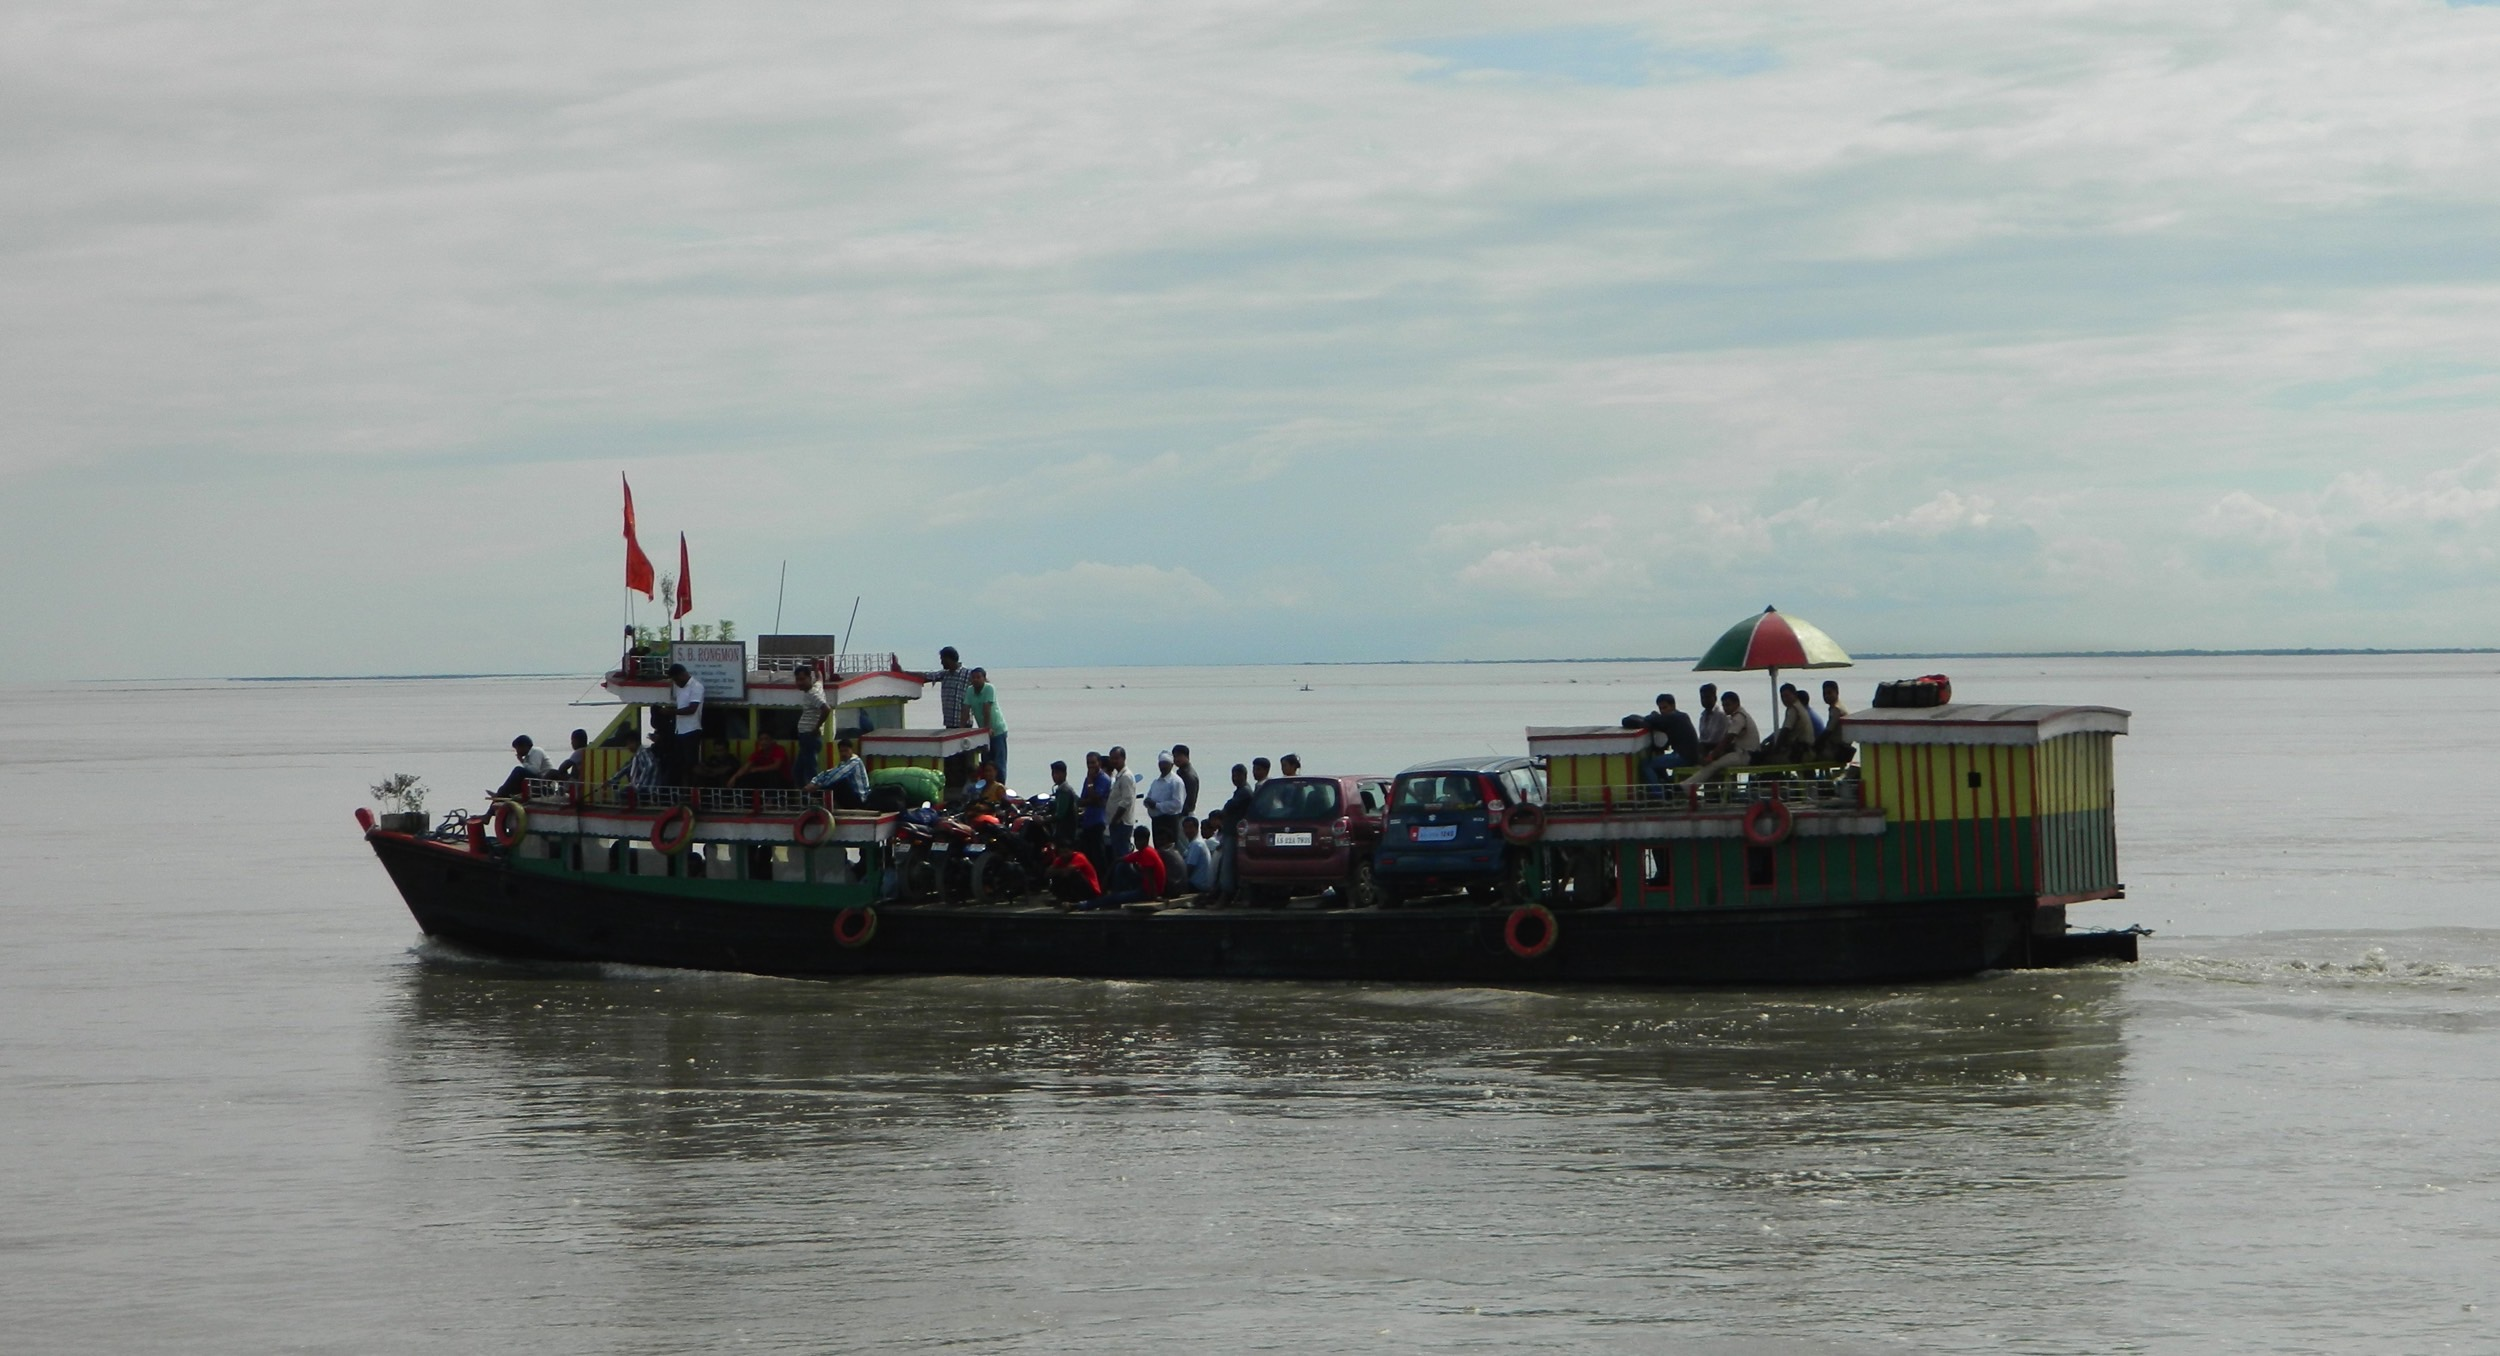 Reviving the Brahmaputra as the Lifeline of Travel and Trade